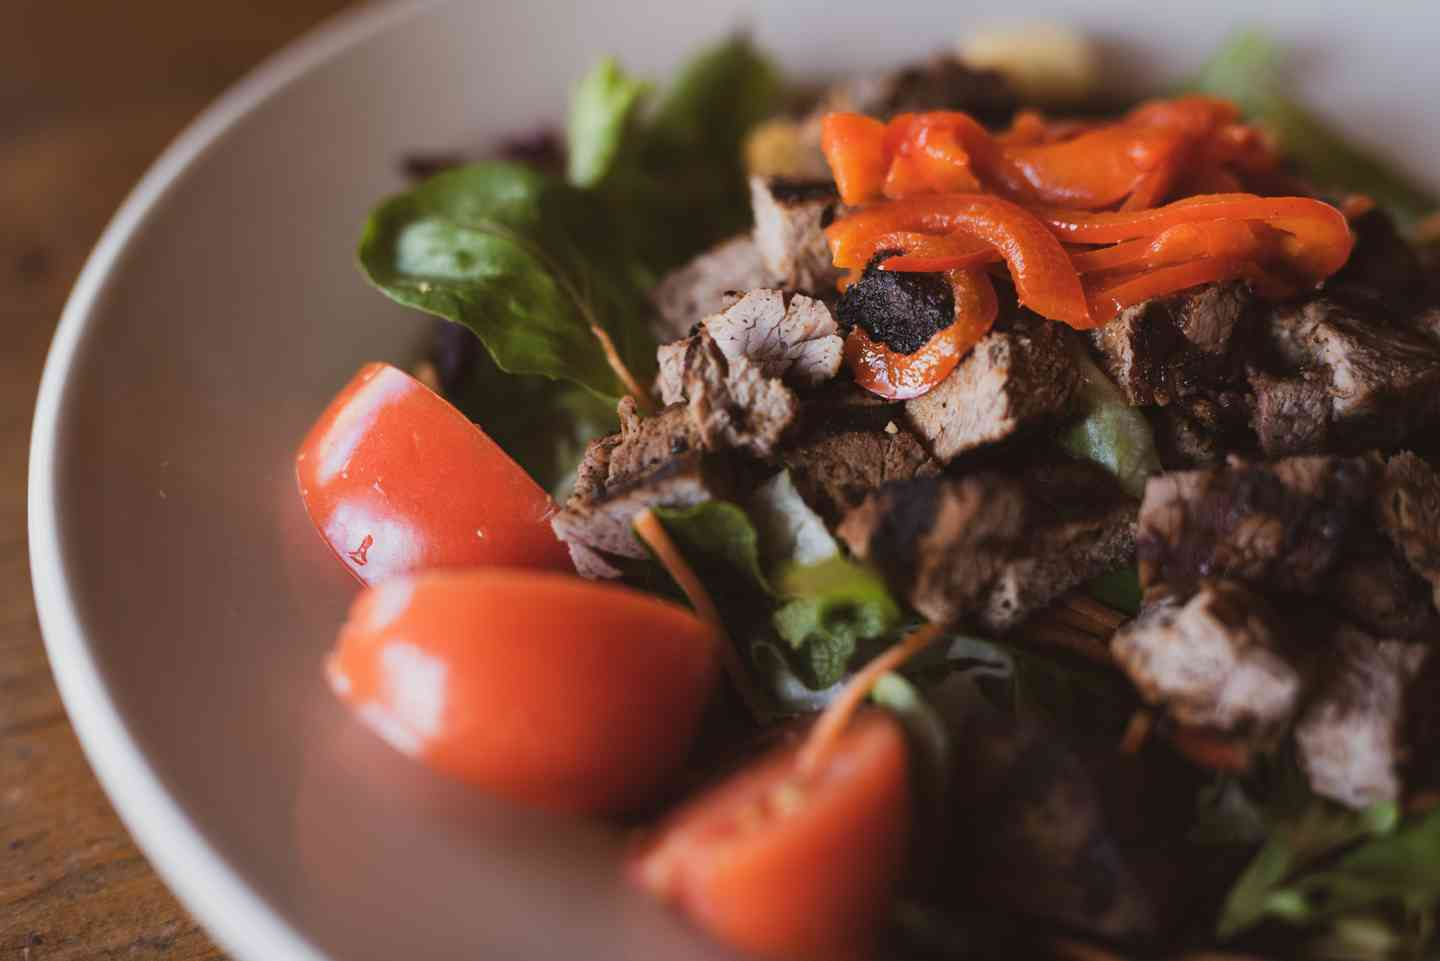 Texas Club Steak Salad